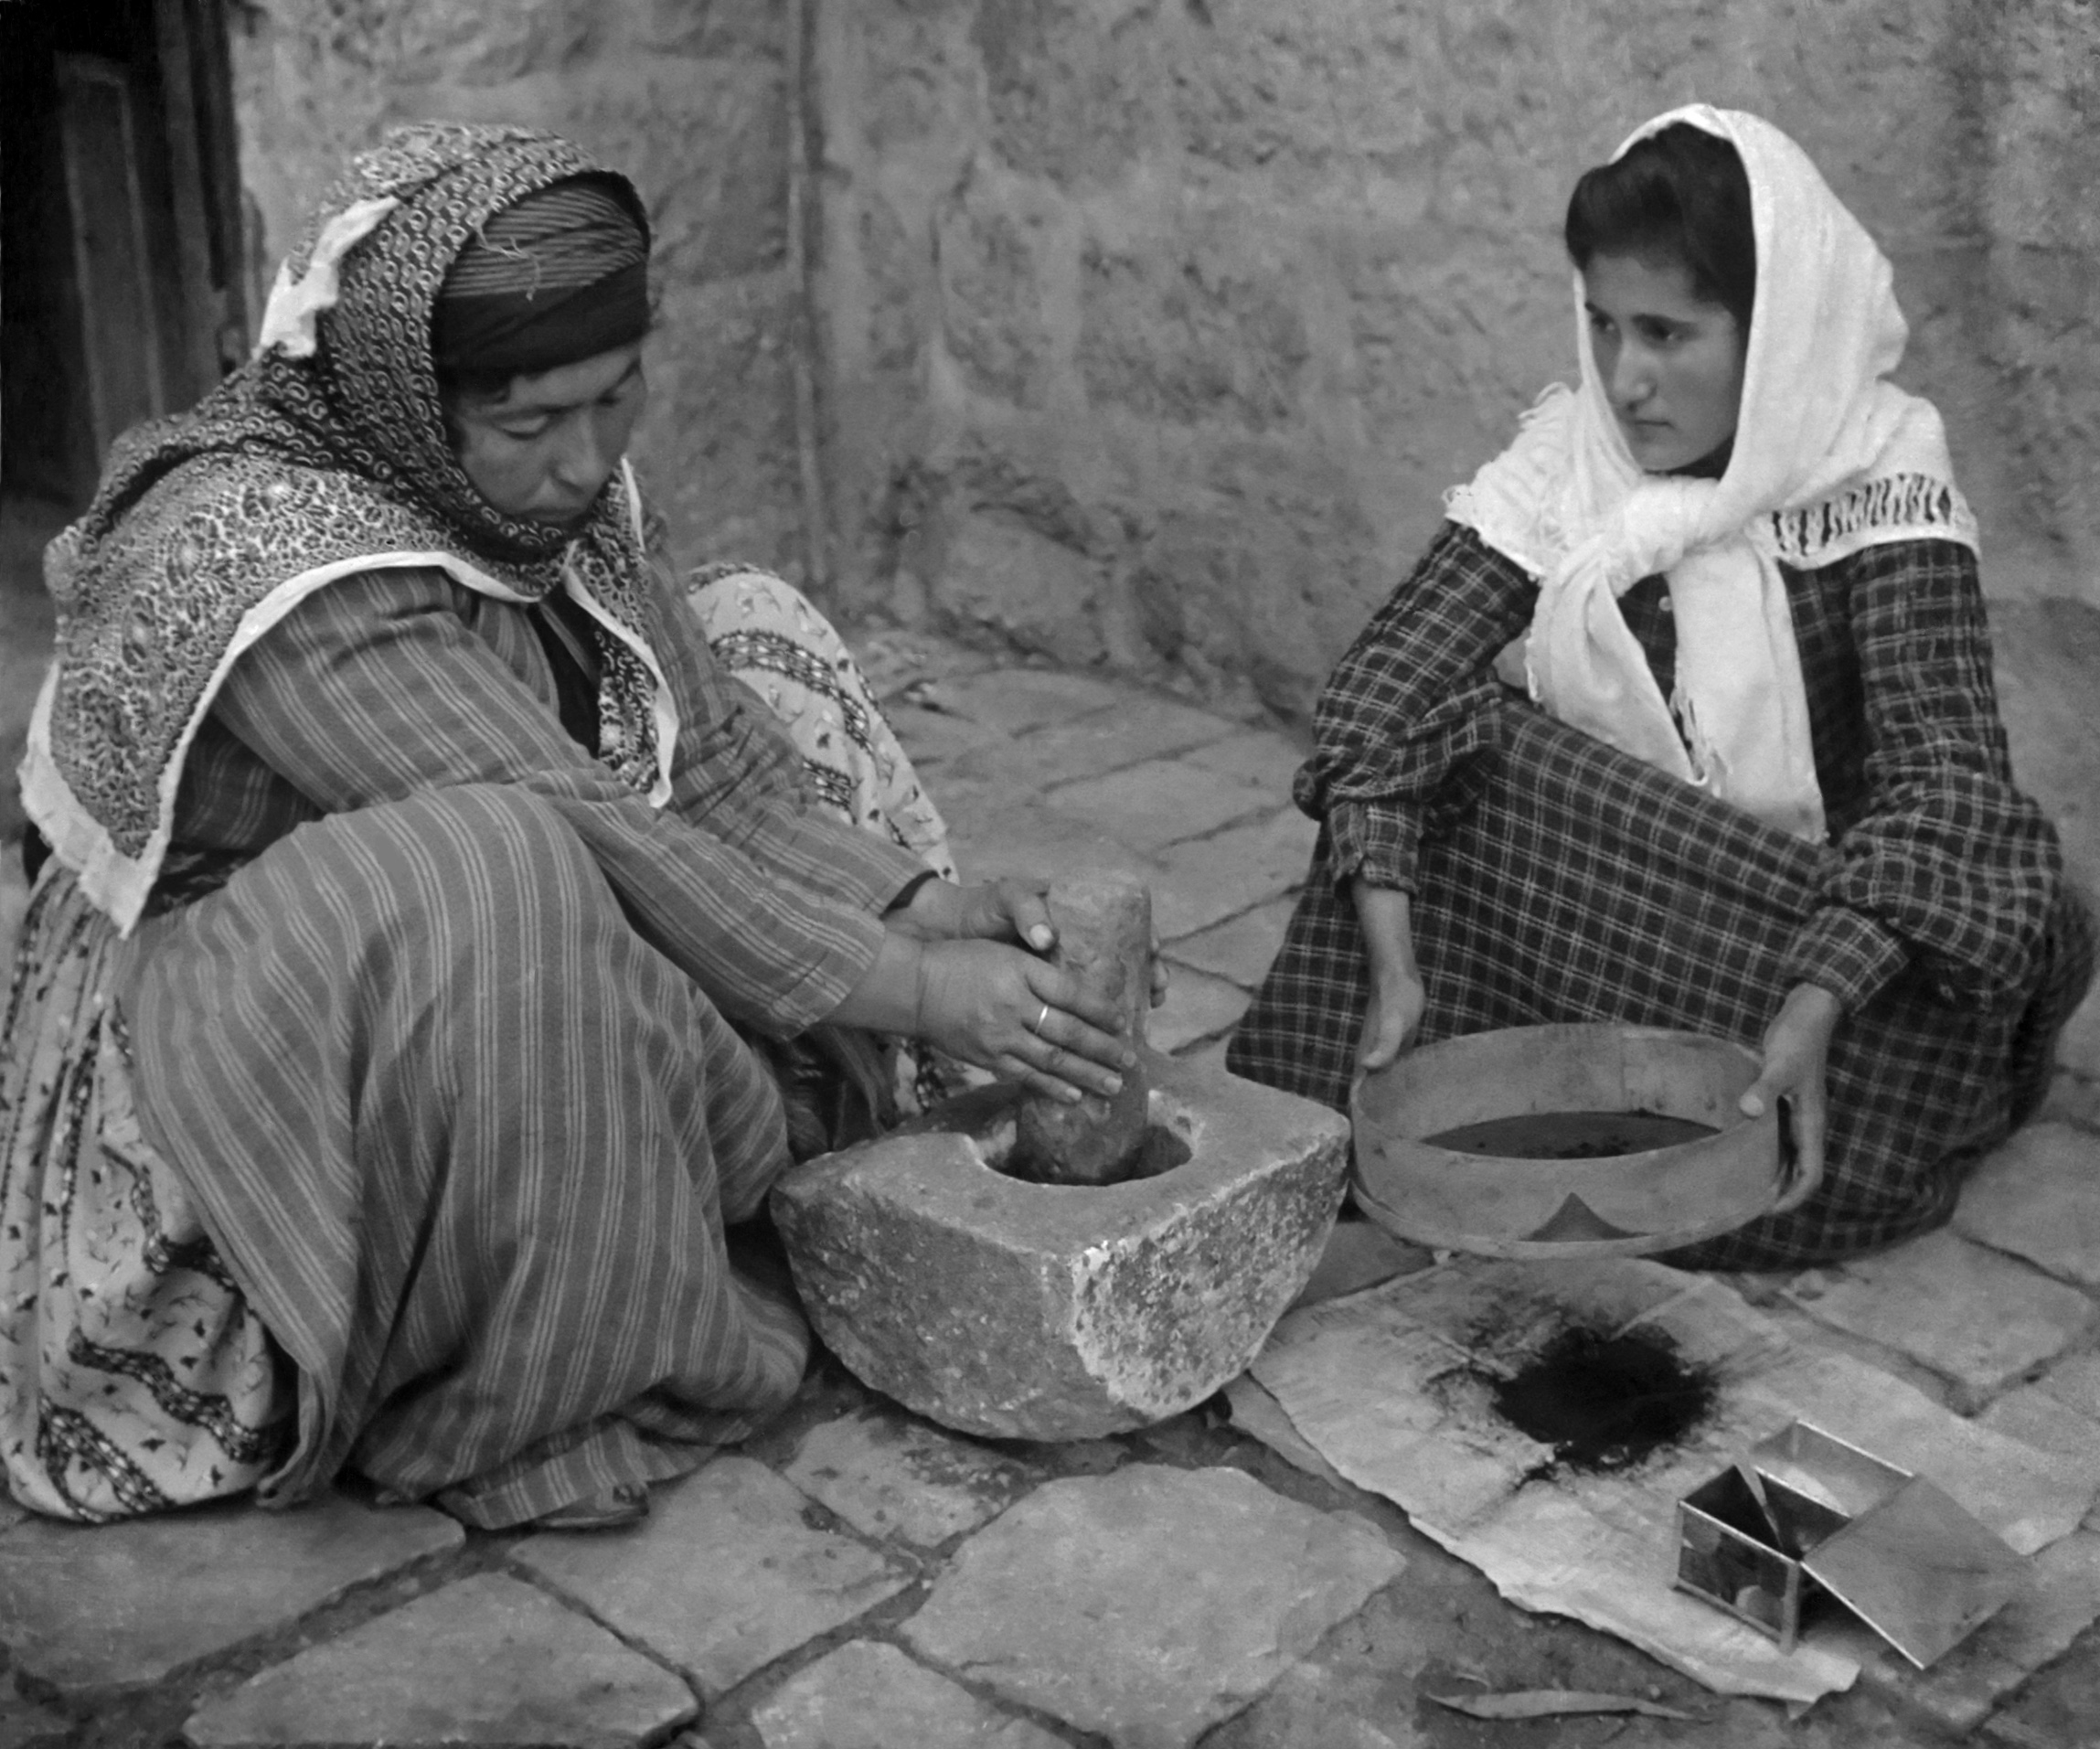 Palestinian_women_grinding_coffee_beans